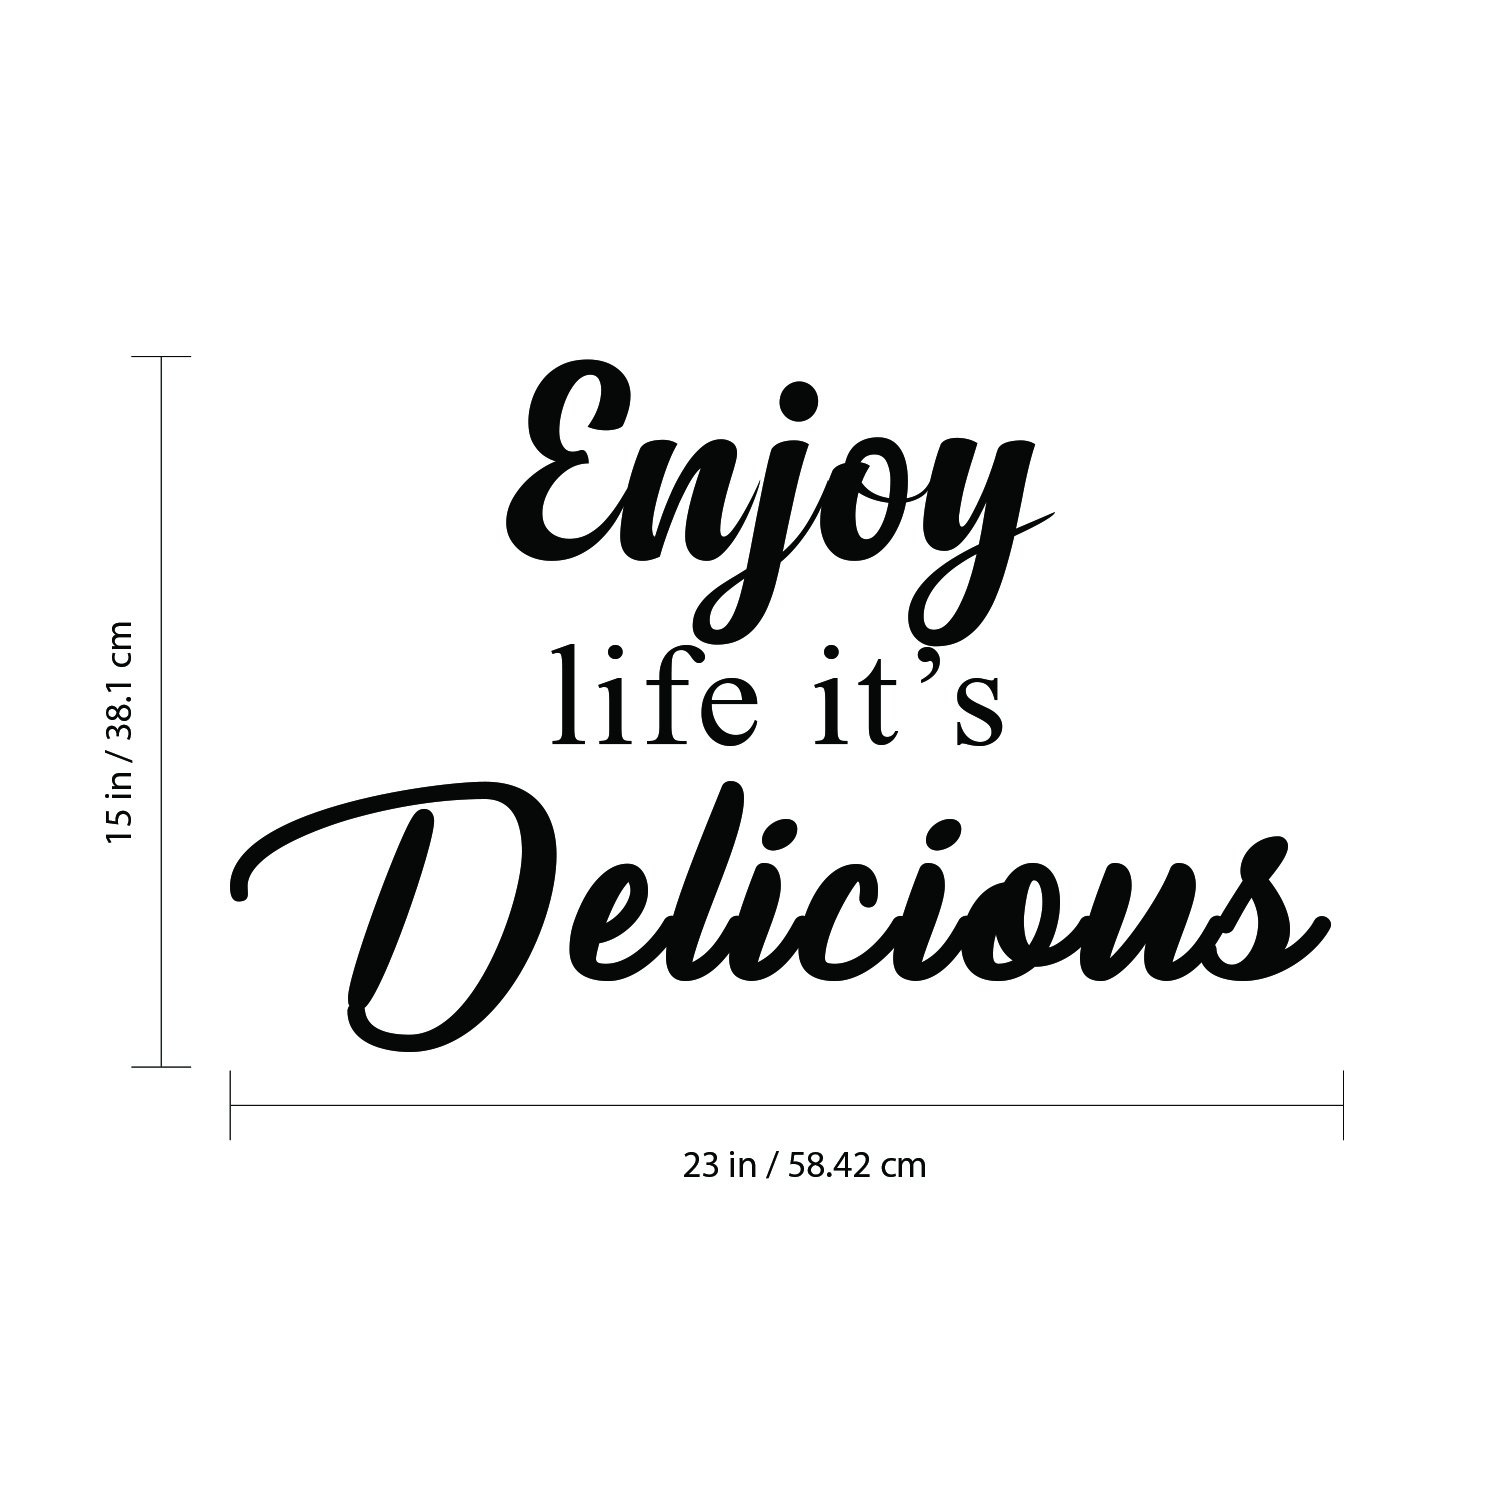 Inspirational Kitchen Decor Trendy Wall Art 15 X 23 Decoration Vinyl Sticker Inspirational Quotes Wall Art Vinyl Decal Motivational Wall Art Decal Enjoy Life Its Delicious